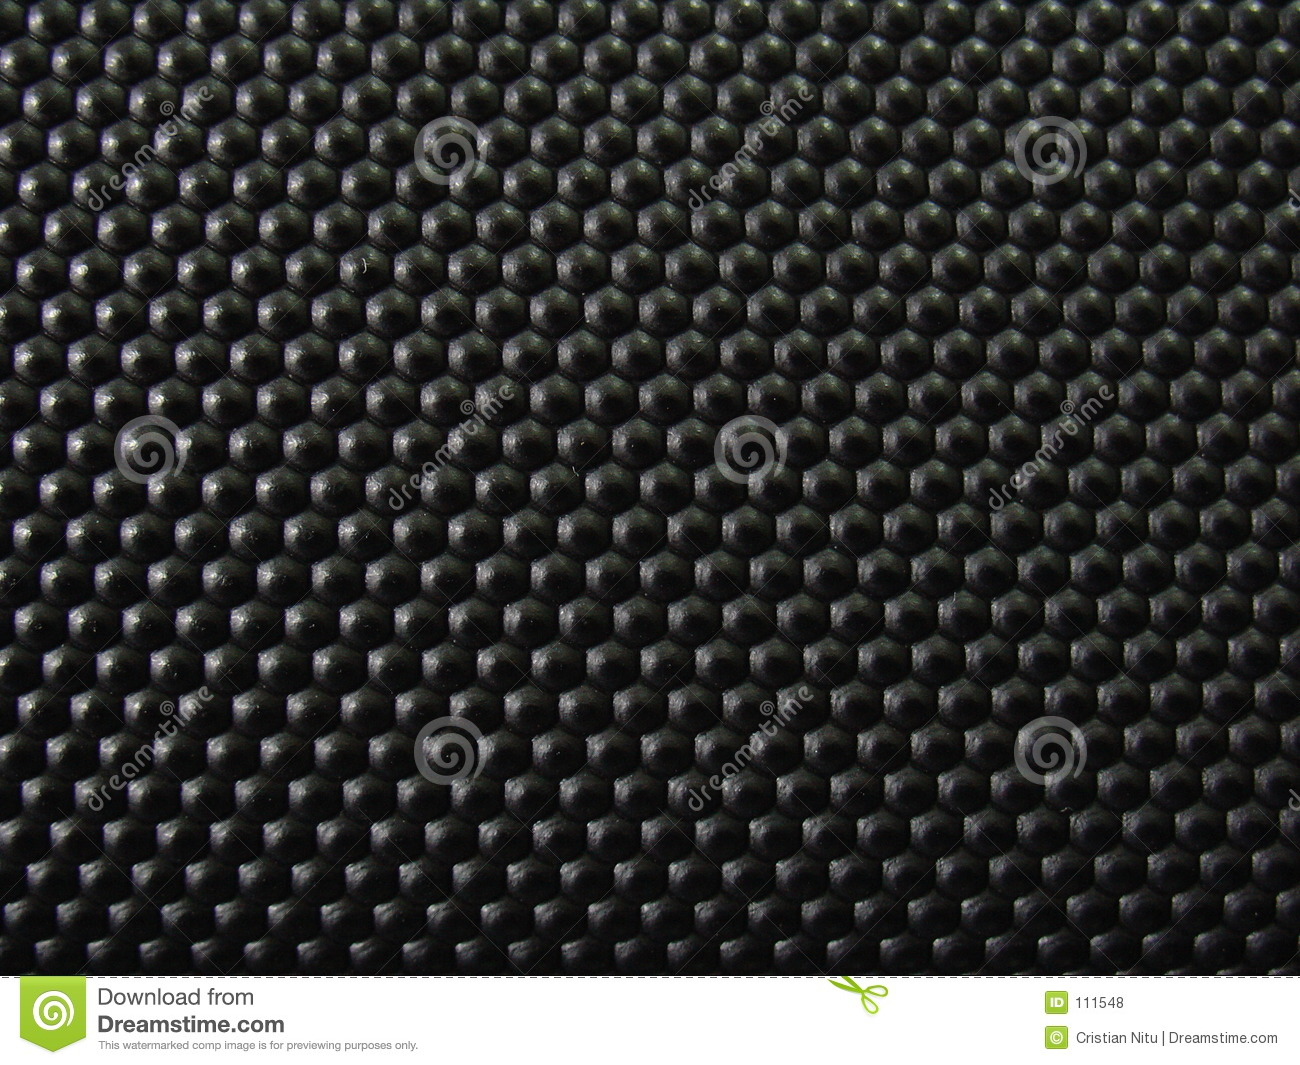 Download Black Background stock photo. Image of texture, circle - 111548